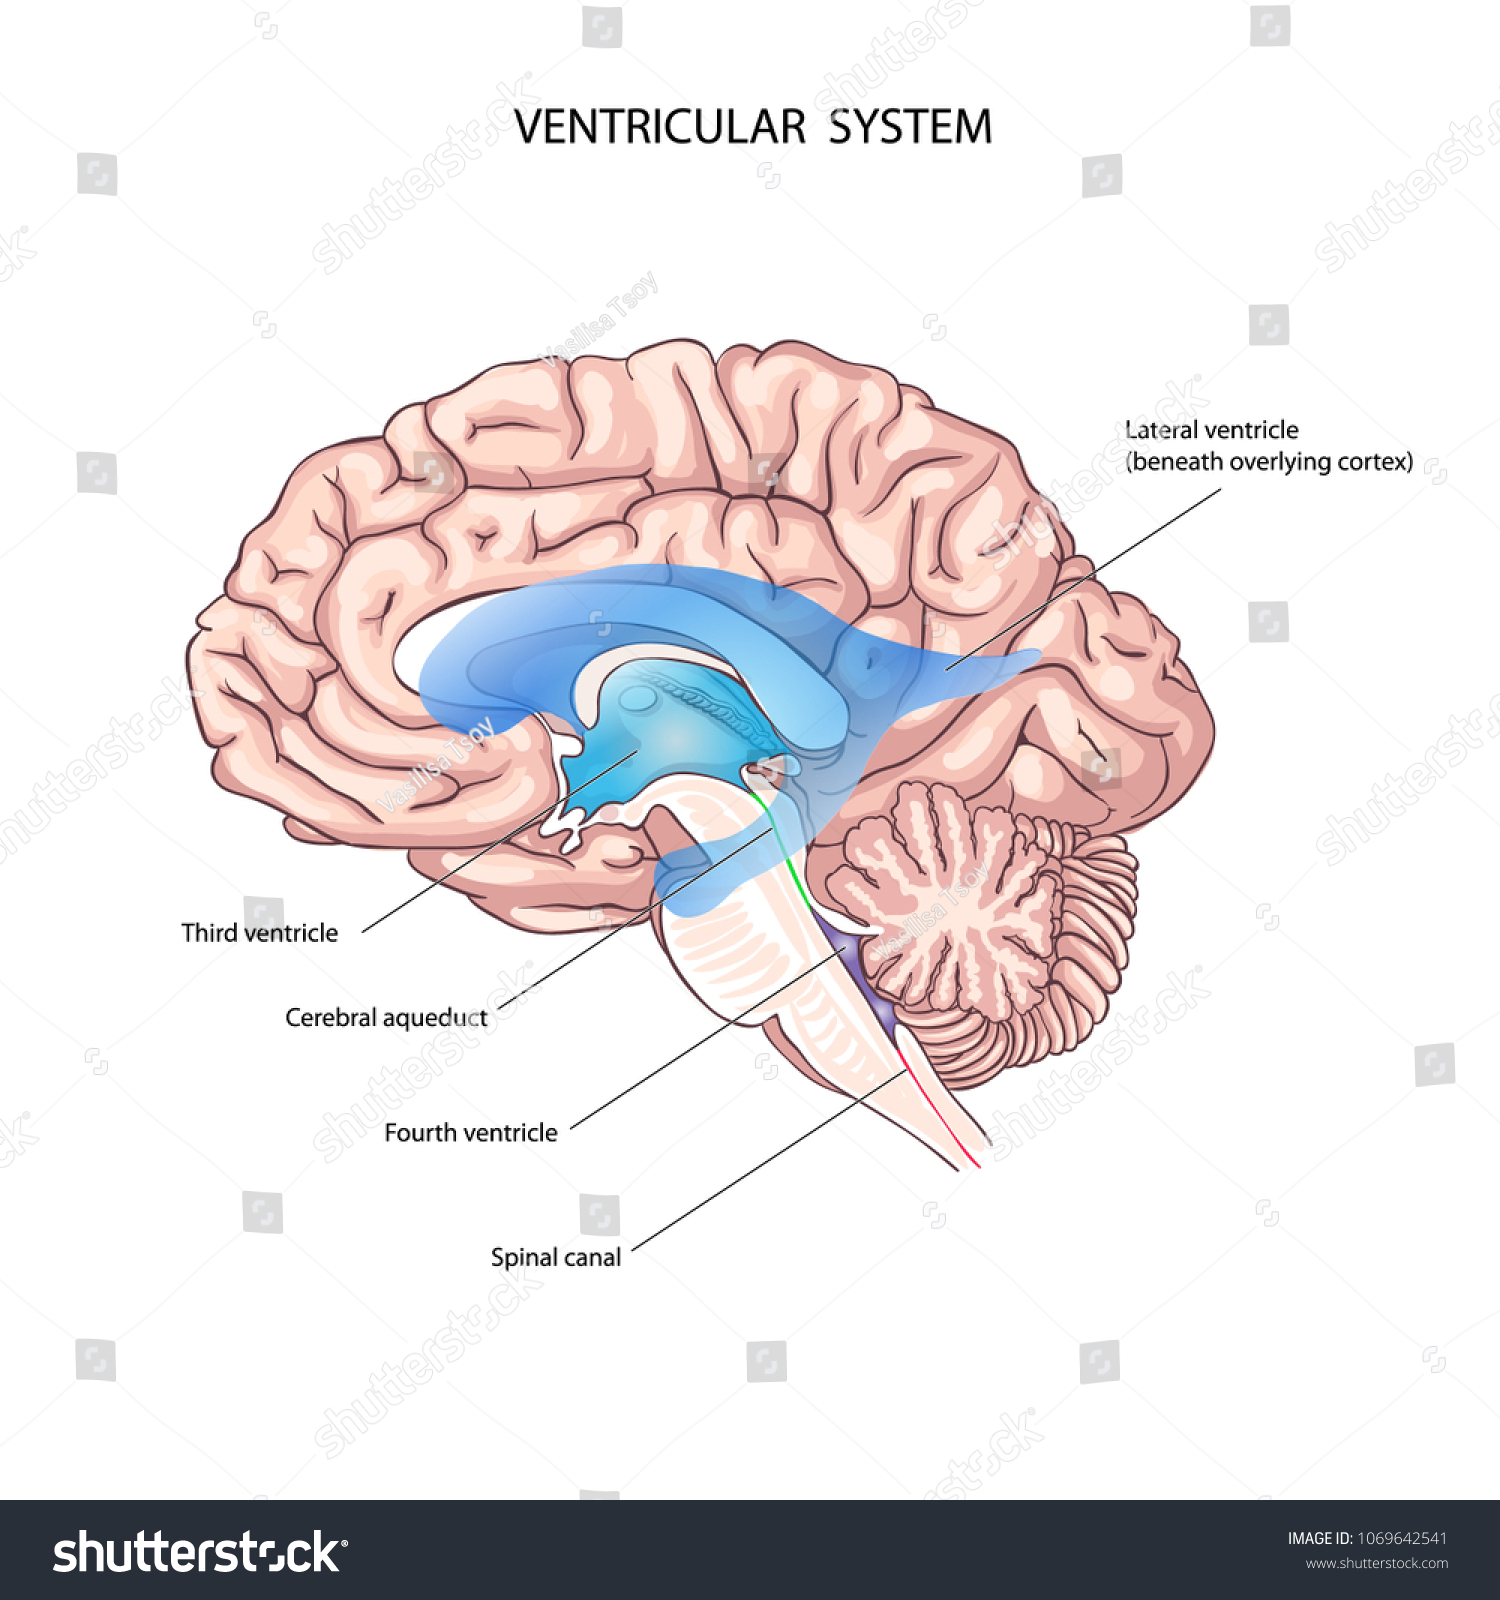 Human Ventricular System Brain Anatomy Third Stock Vector 1069642541 ...